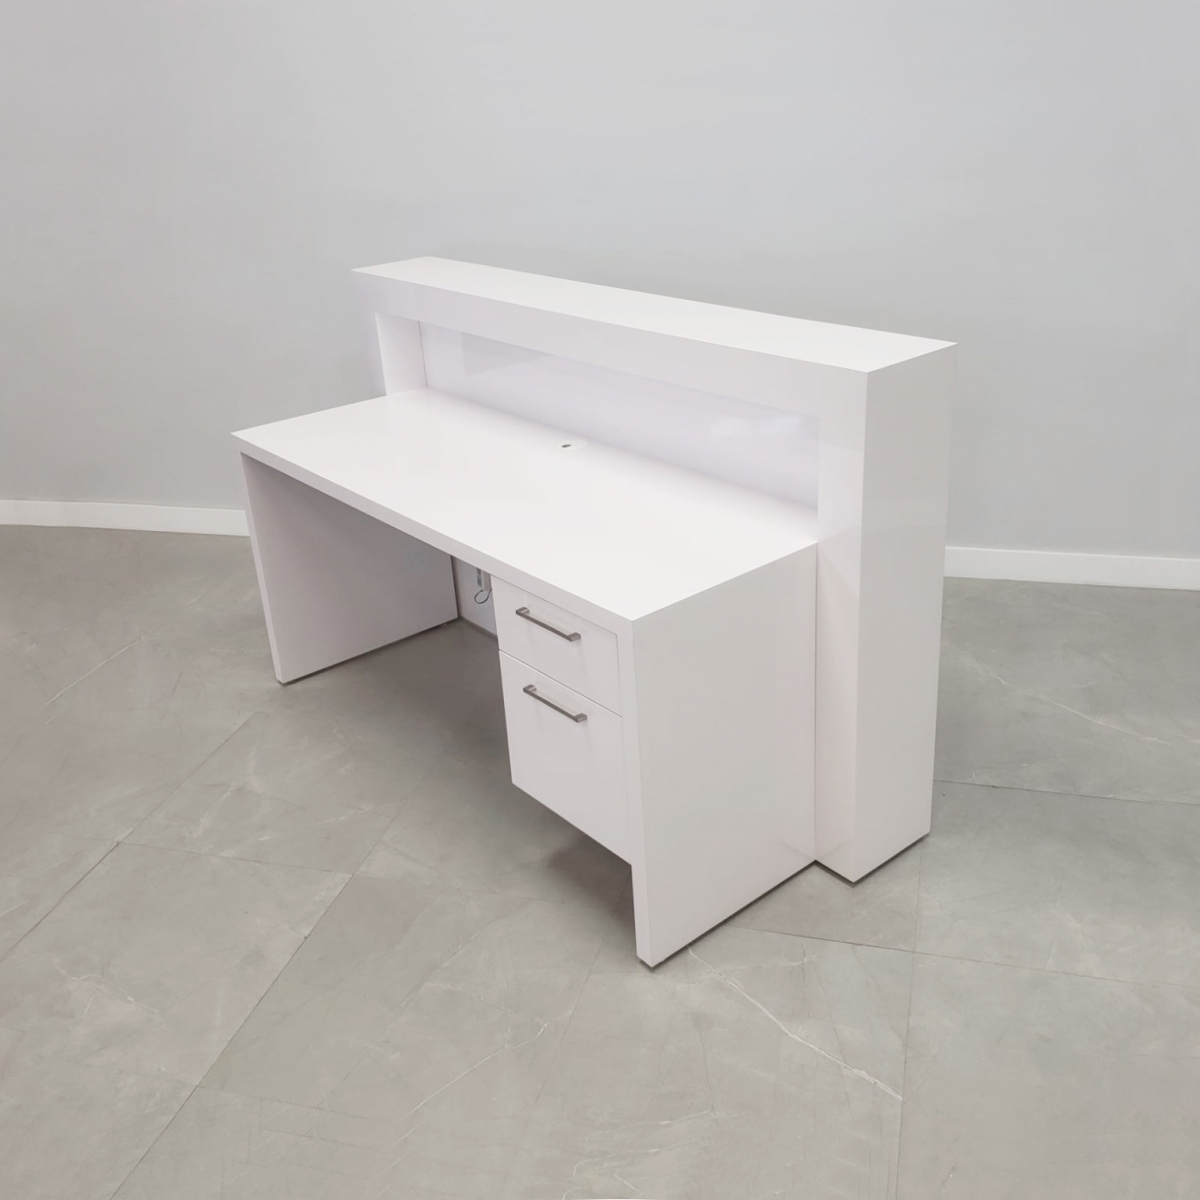 72 In. New York Straight Shape Reception Desk with Storage